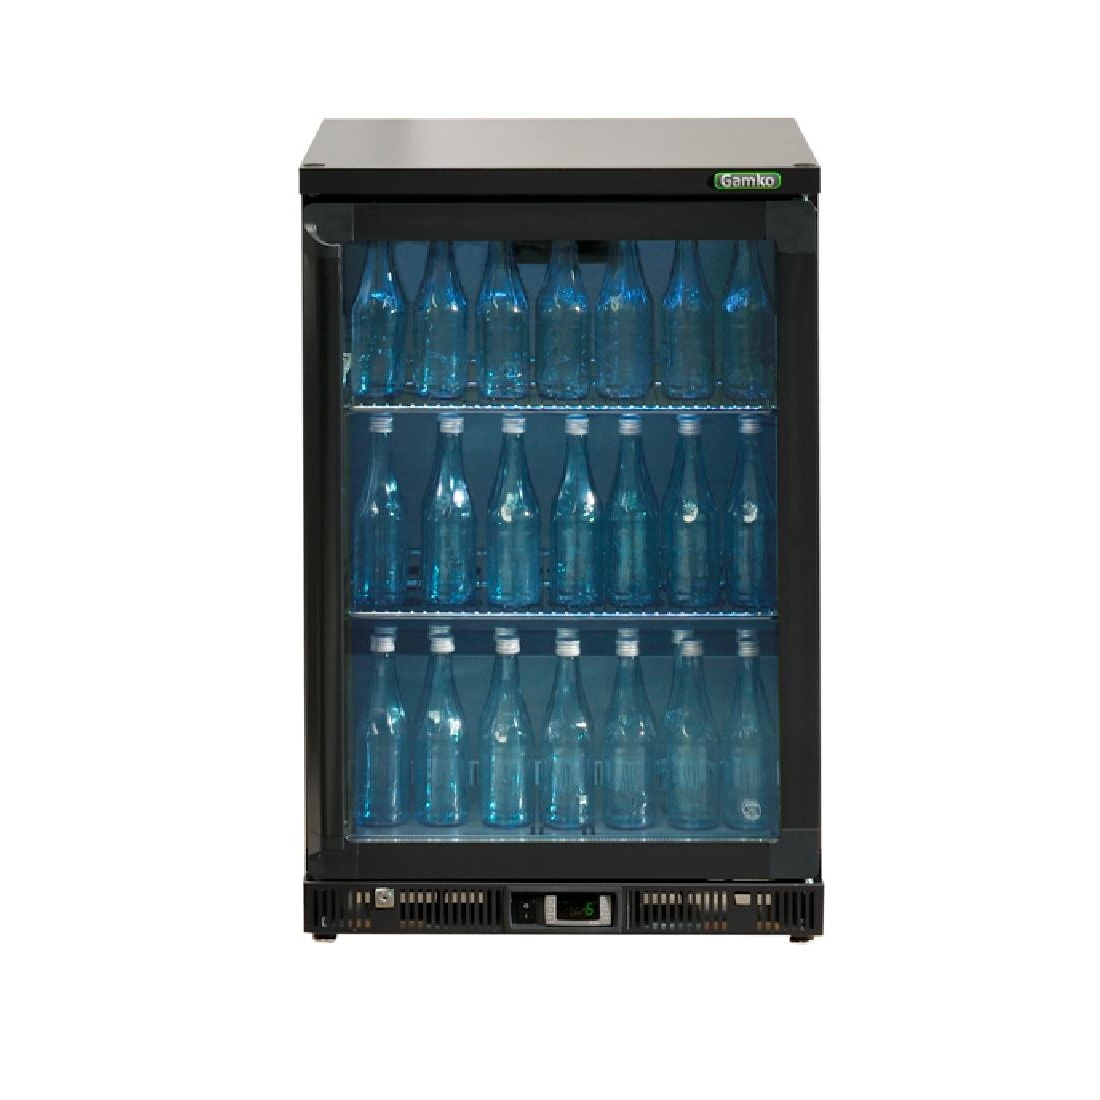 Gamko Single Door Back Bar Cooler